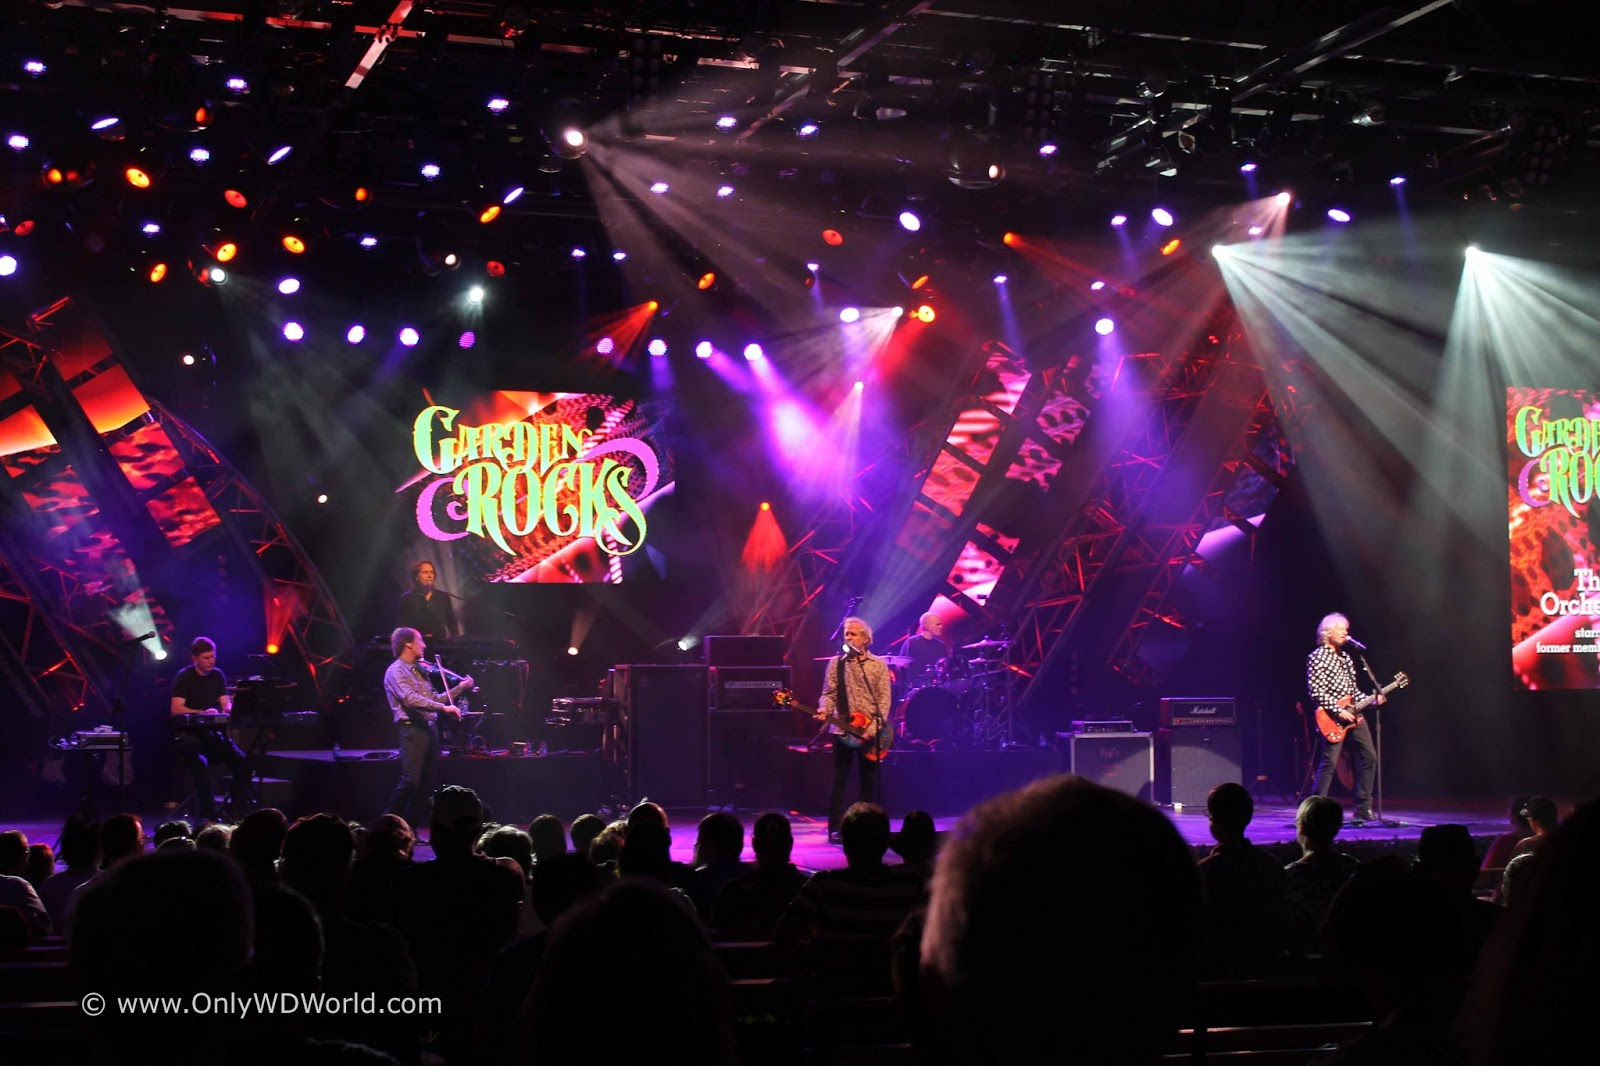 Garden Rocks Concert Series Returns To Epcot In 2018 With Star Studded Lineup Disney World